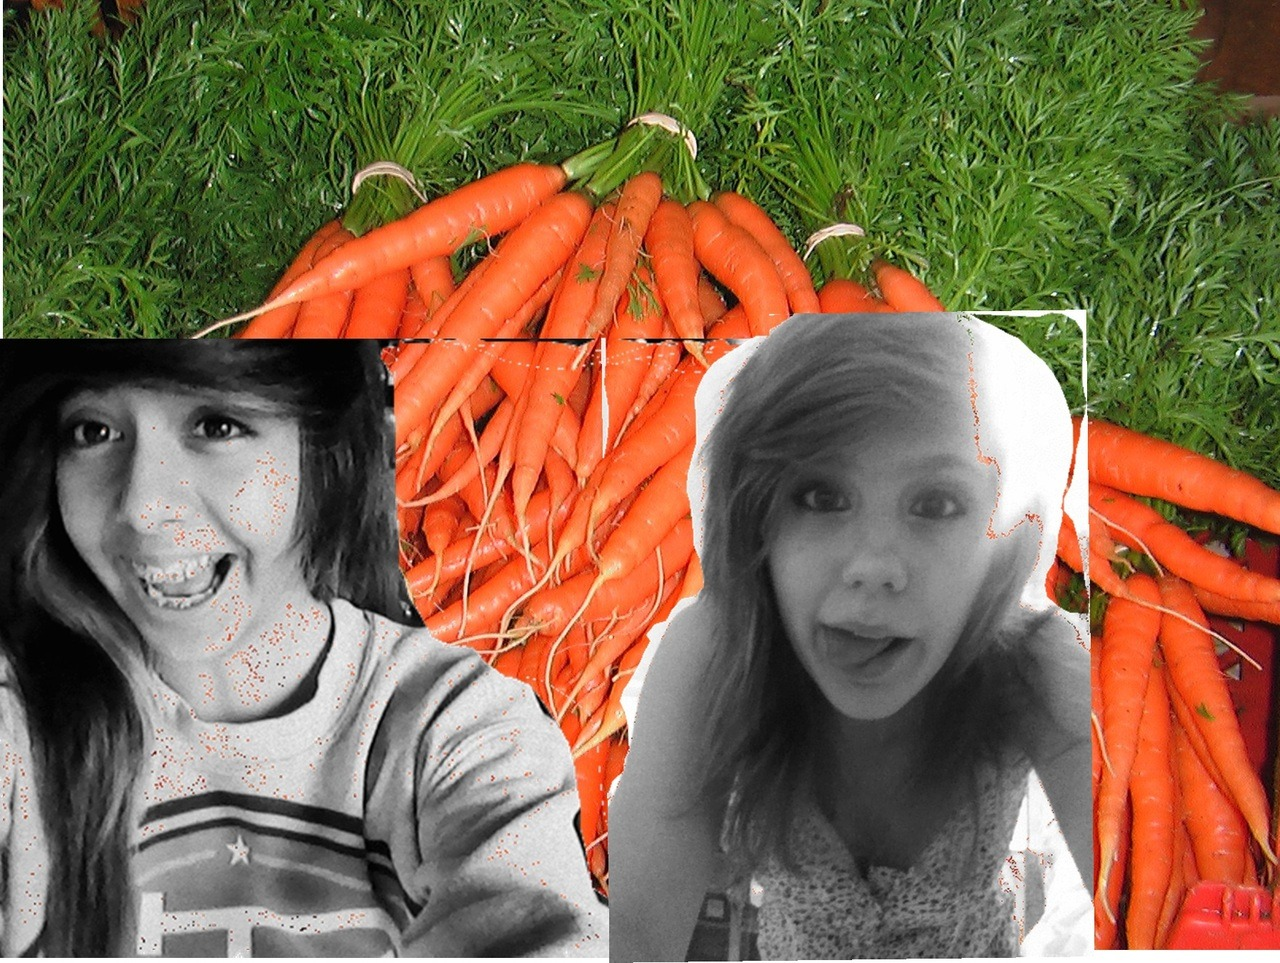 wwolvves:  guess what our favorite vegetable is !!!!!!!!  BOOTYLICIOUS CARROTS.